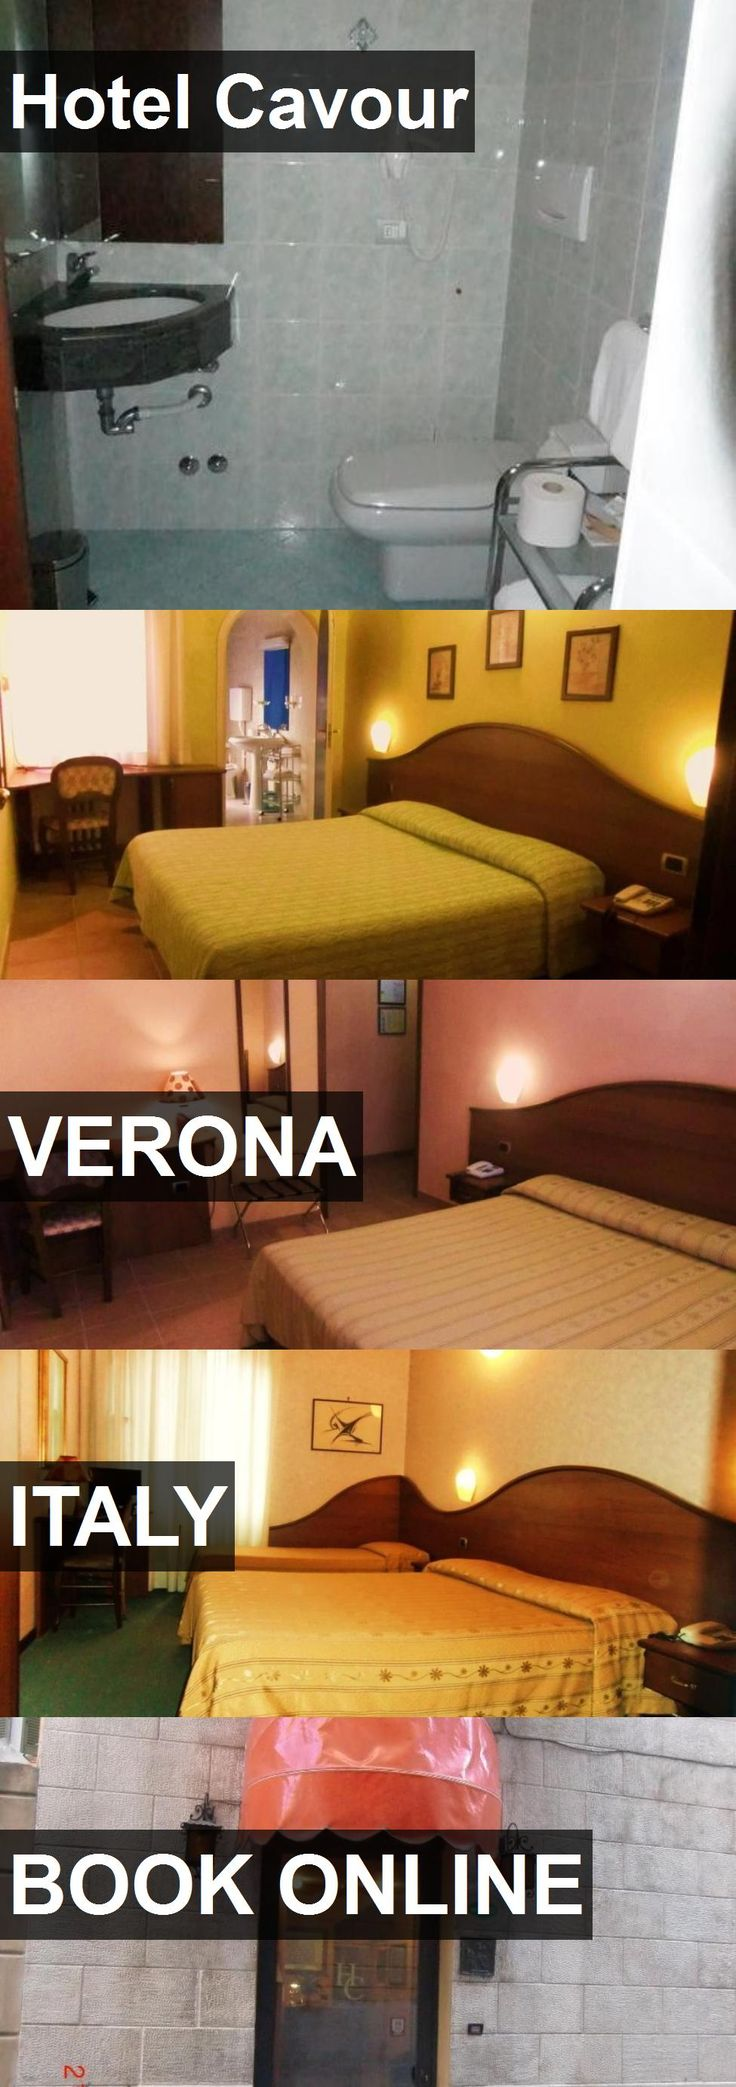 Hotel Hotel Cavour in Verona, Italy. For more information, photos, reviews and best prices please follow the link. #Italy #Verona #HotelCavour #hotel #travel #vacation